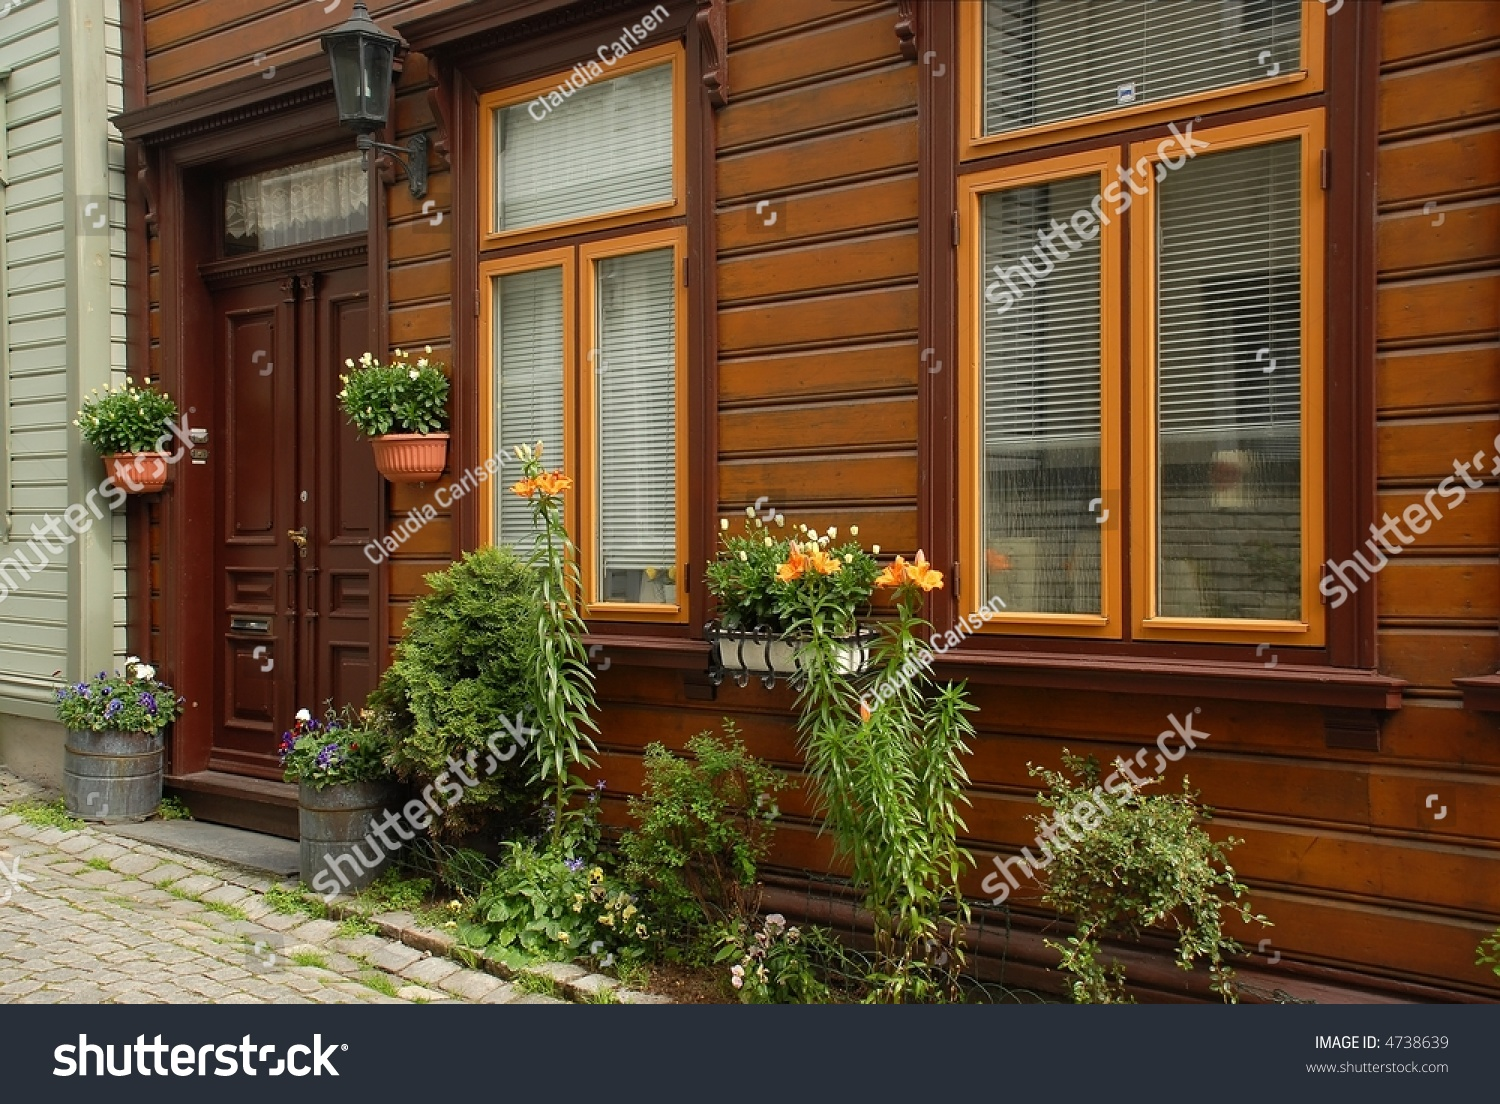 Traditional Cozy Wooden House Bergen Norway Stock Photo - Cozy wooden house